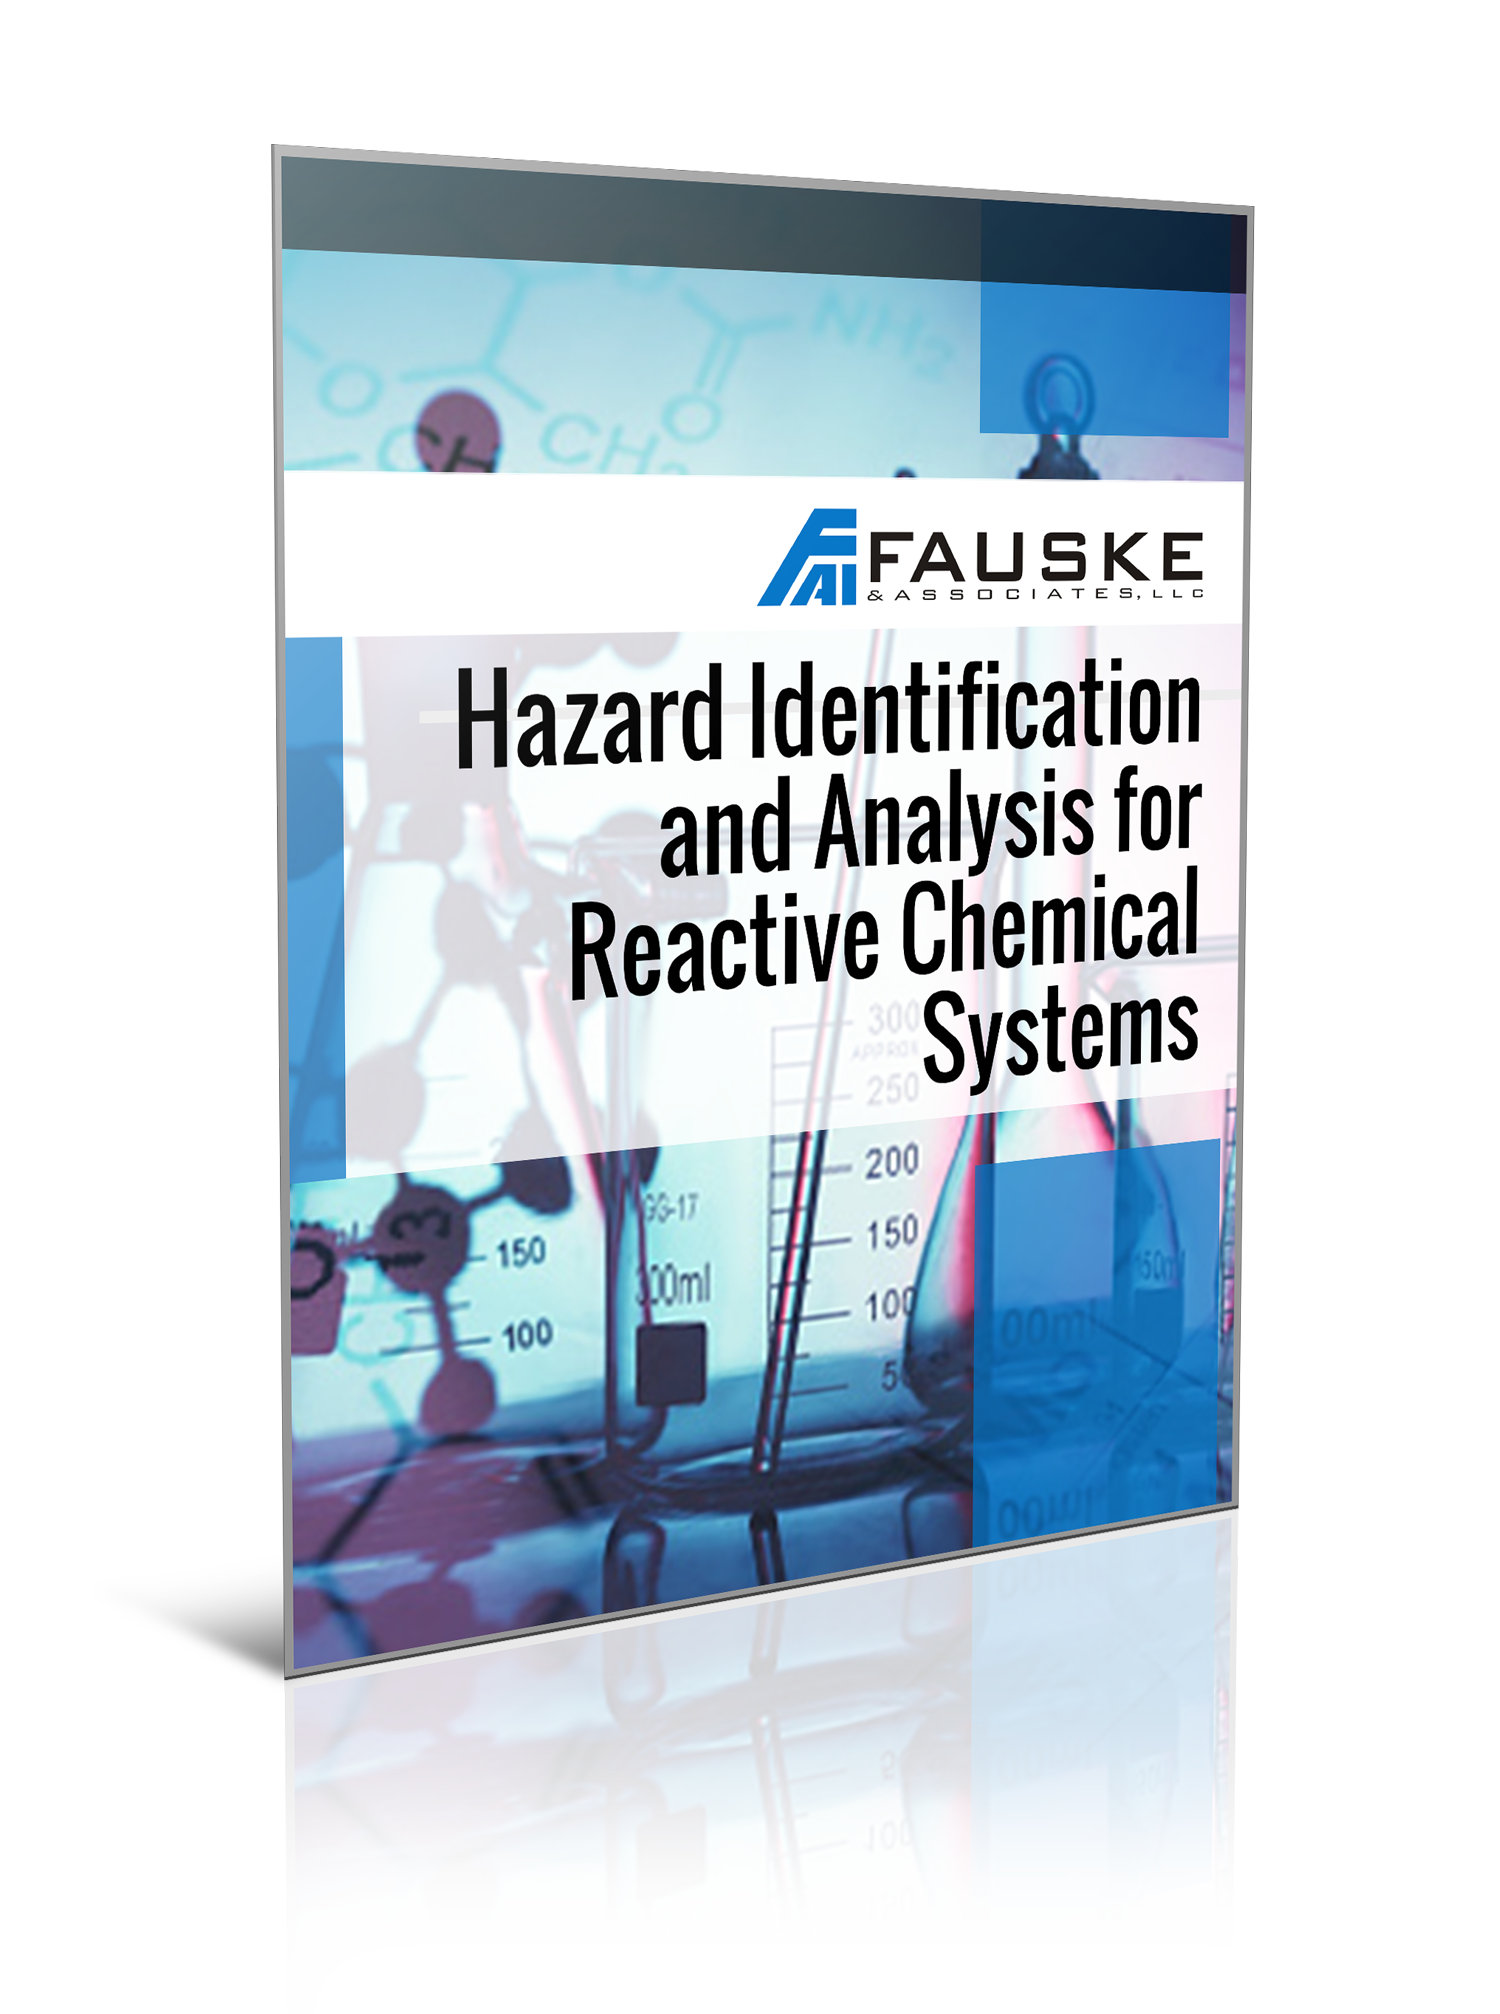 fauske-pg-cover-chemical-reaction.png